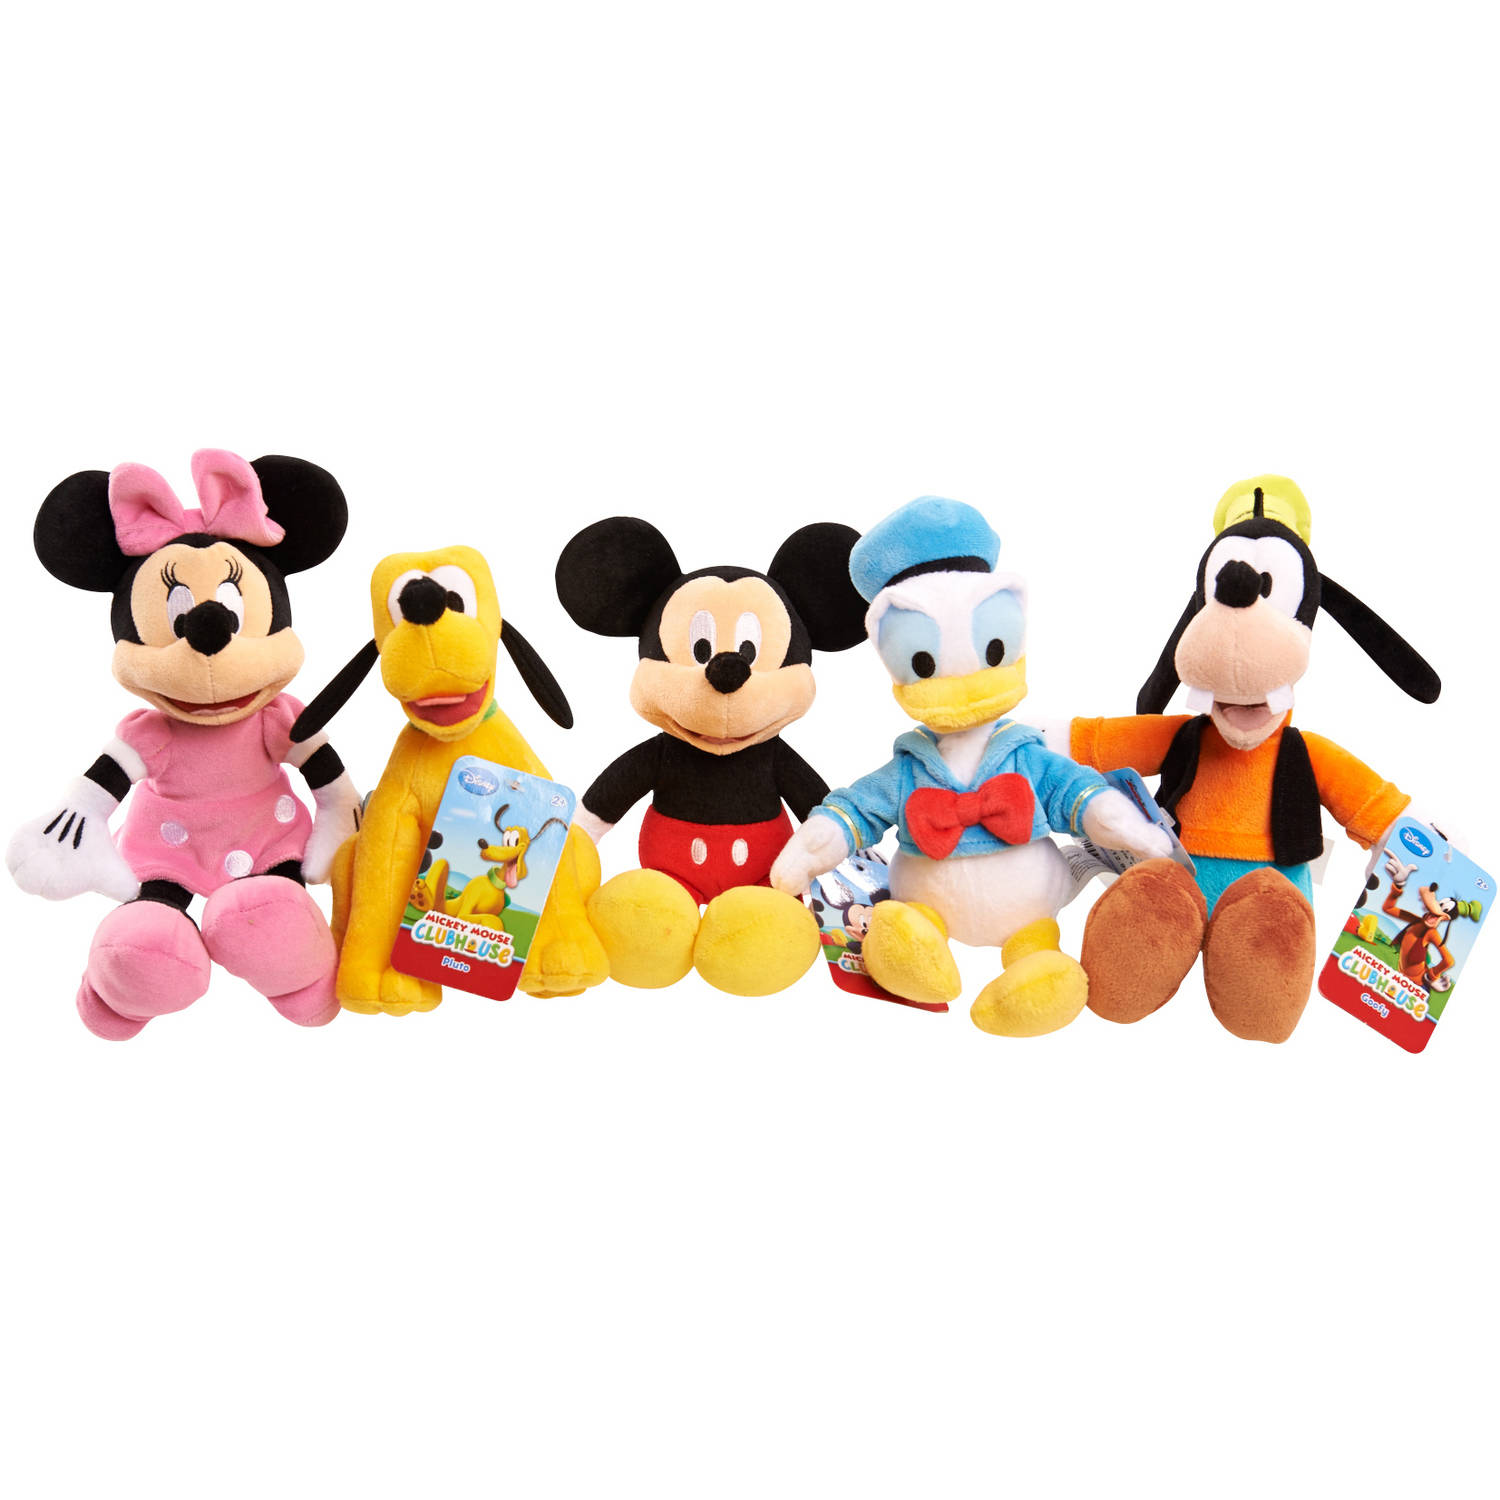 Disney Mickey Mouse Clubhouse Plush Characters 5 Pack